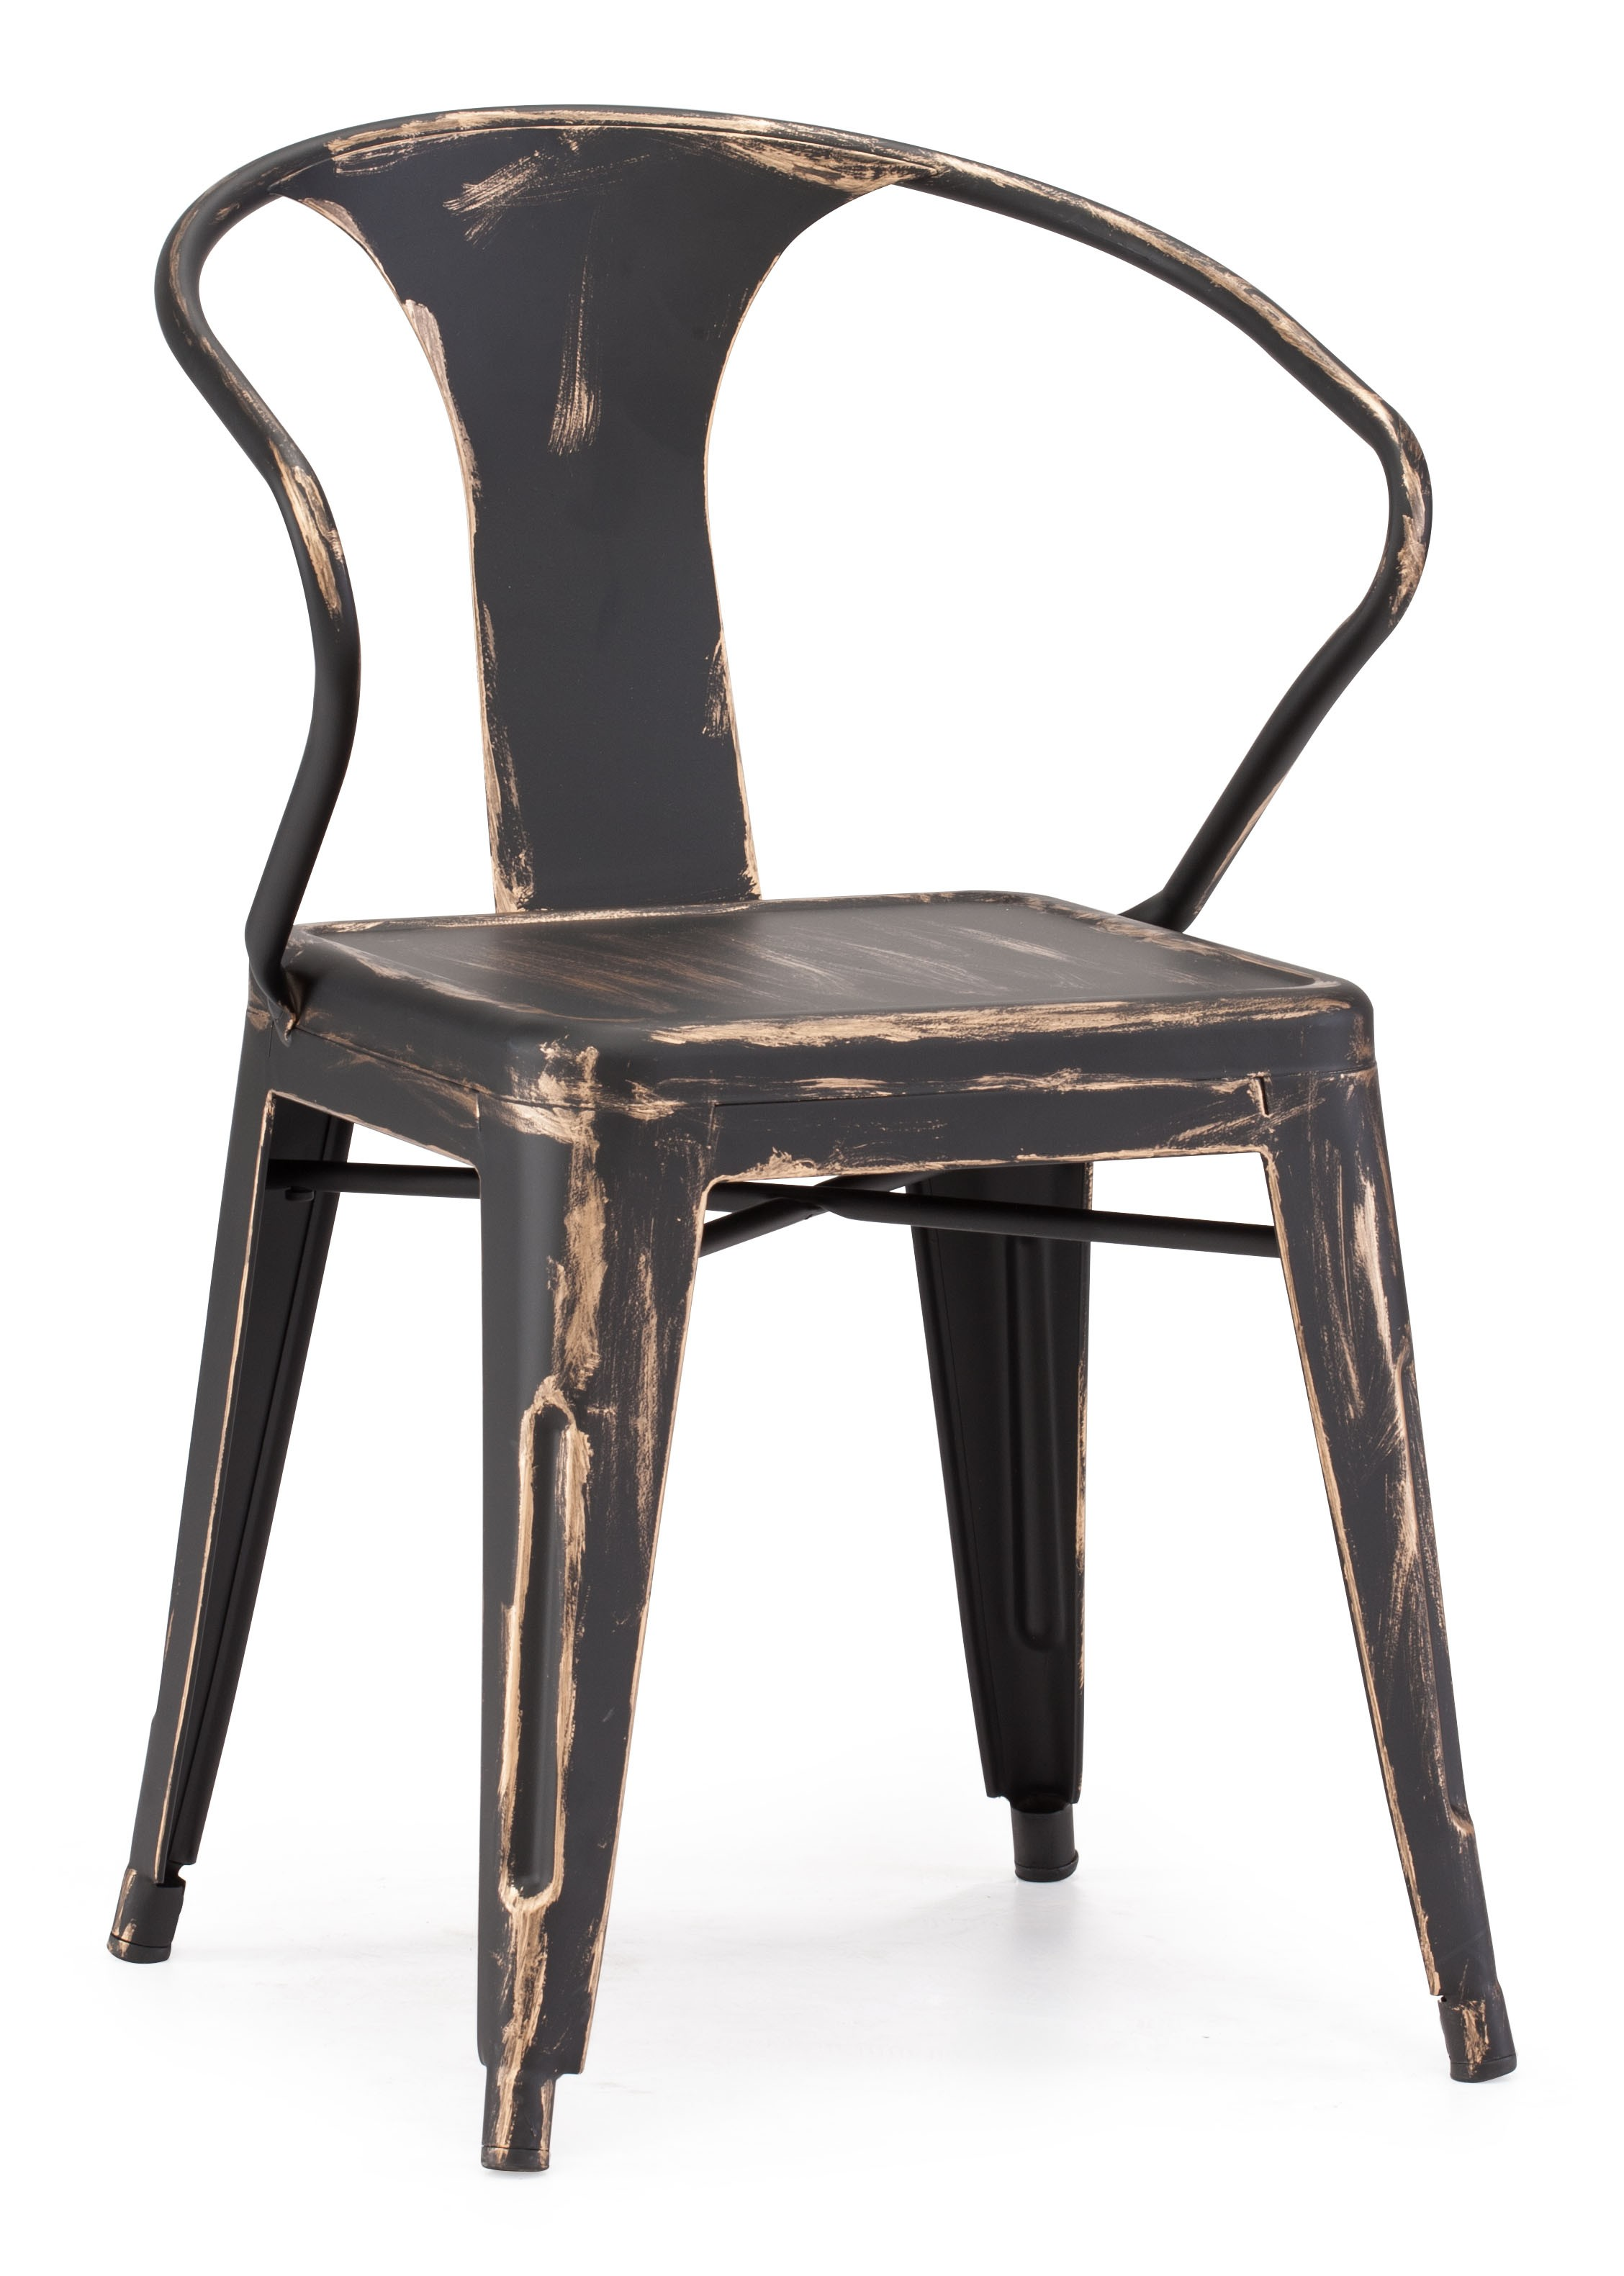 Hollywood regency dining chairs Photo - 1